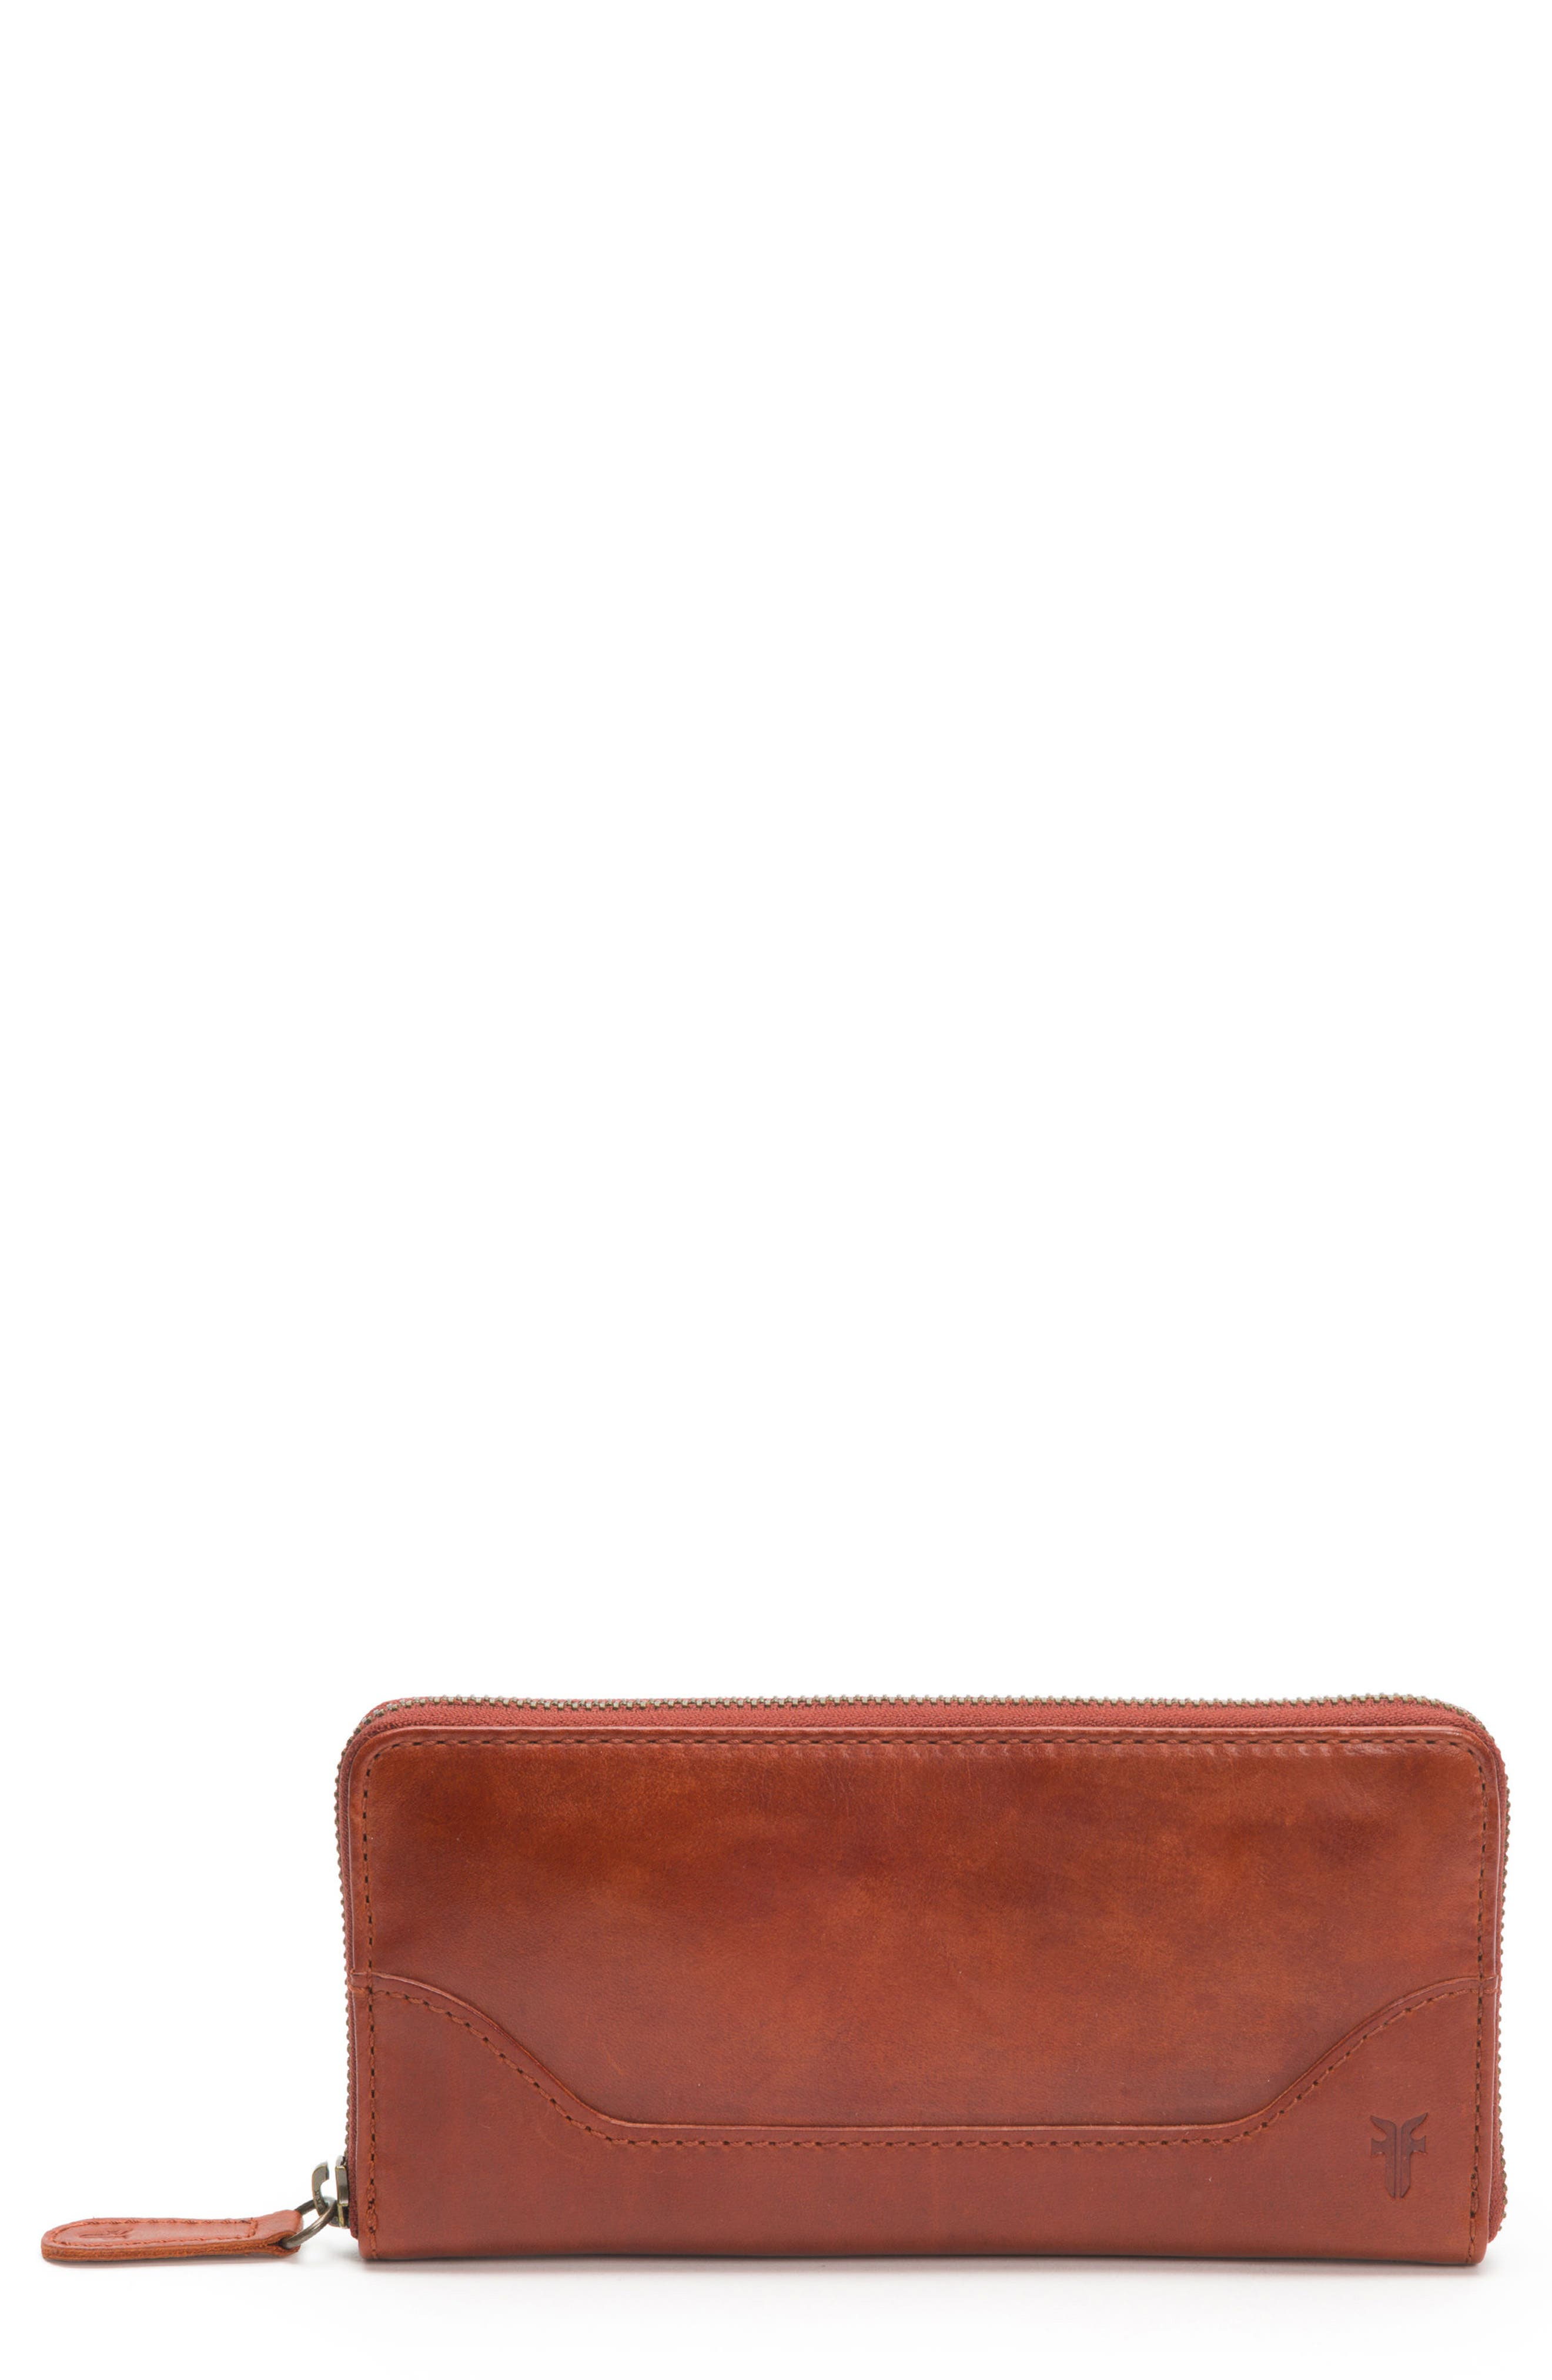 Melissa Leather Wallet,                         Main,                         color, Red Clay